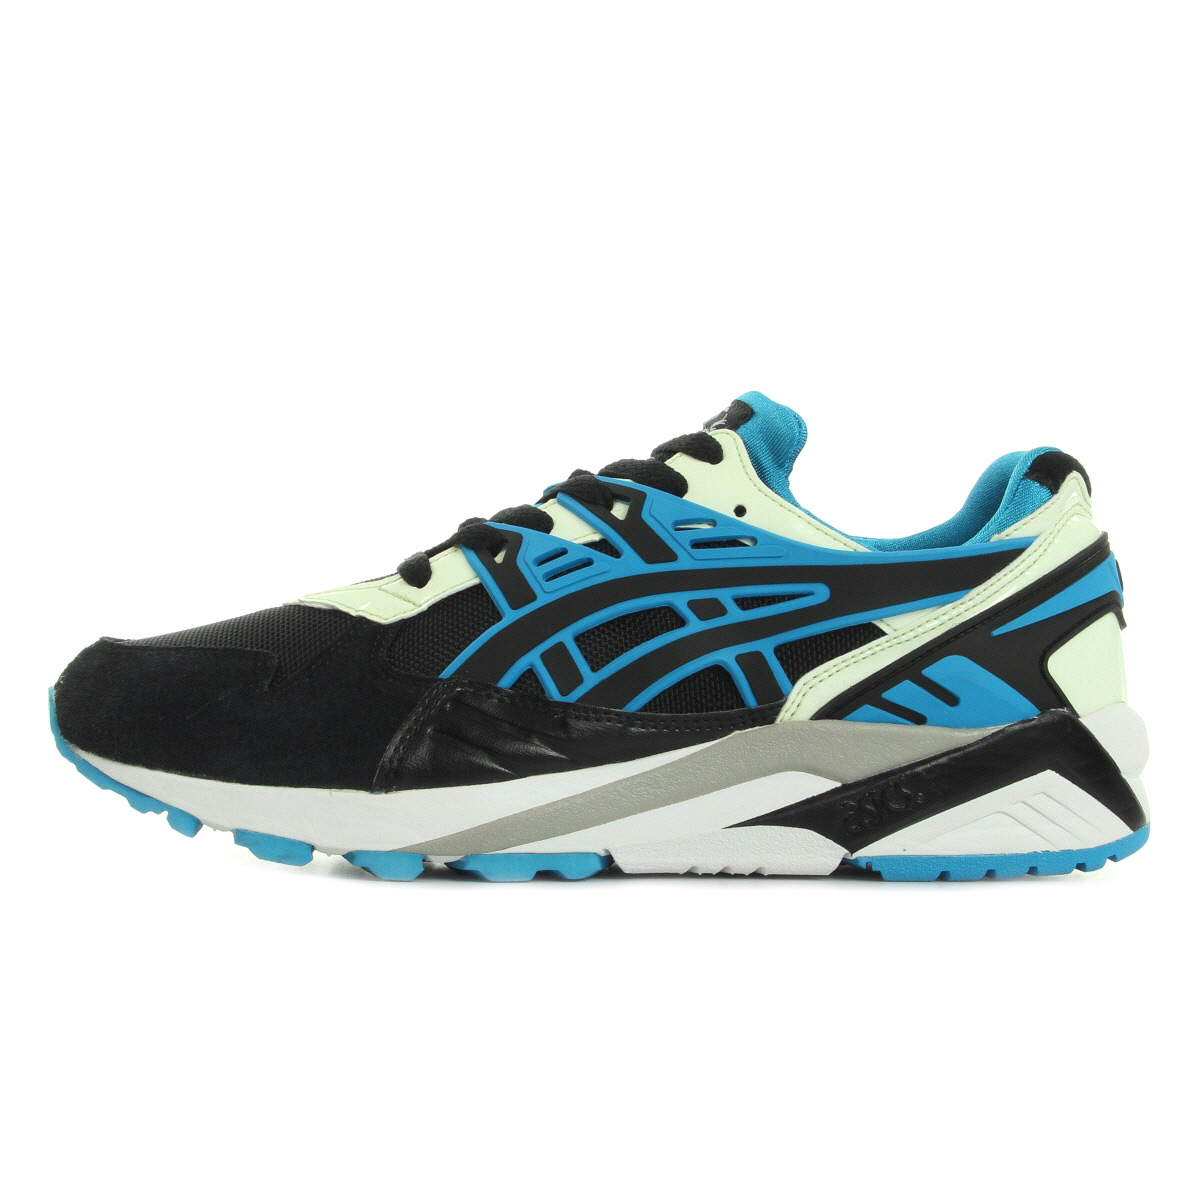 chaussures baskets asics homme gel kayano trainer taille noir noire cuir lacets ebay. Black Bedroom Furniture Sets. Home Design Ideas